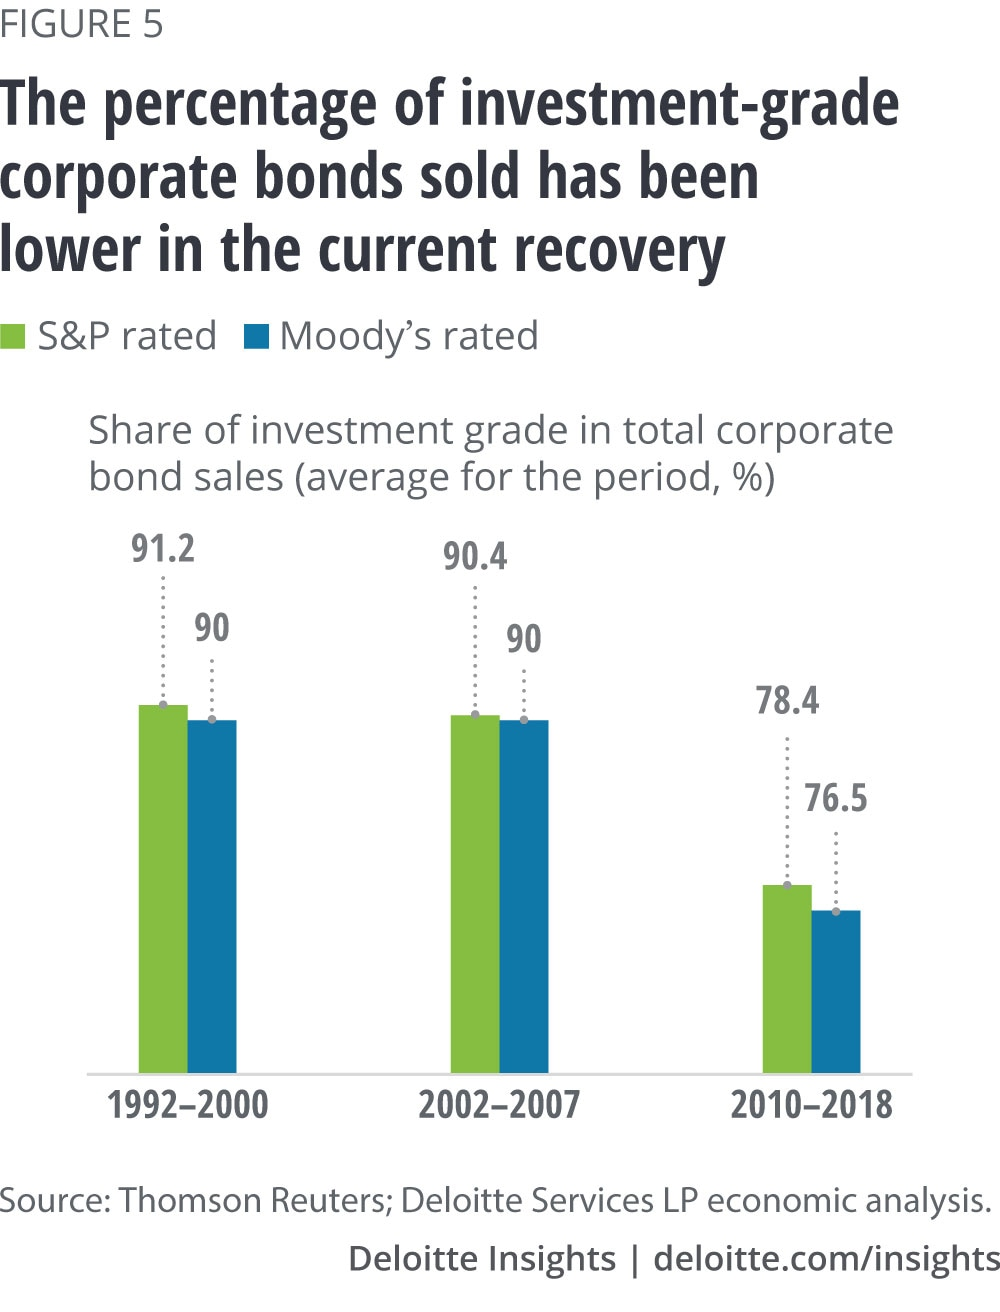 The percentage of investment-grade corporate bonds sold has been lower in the current recovery